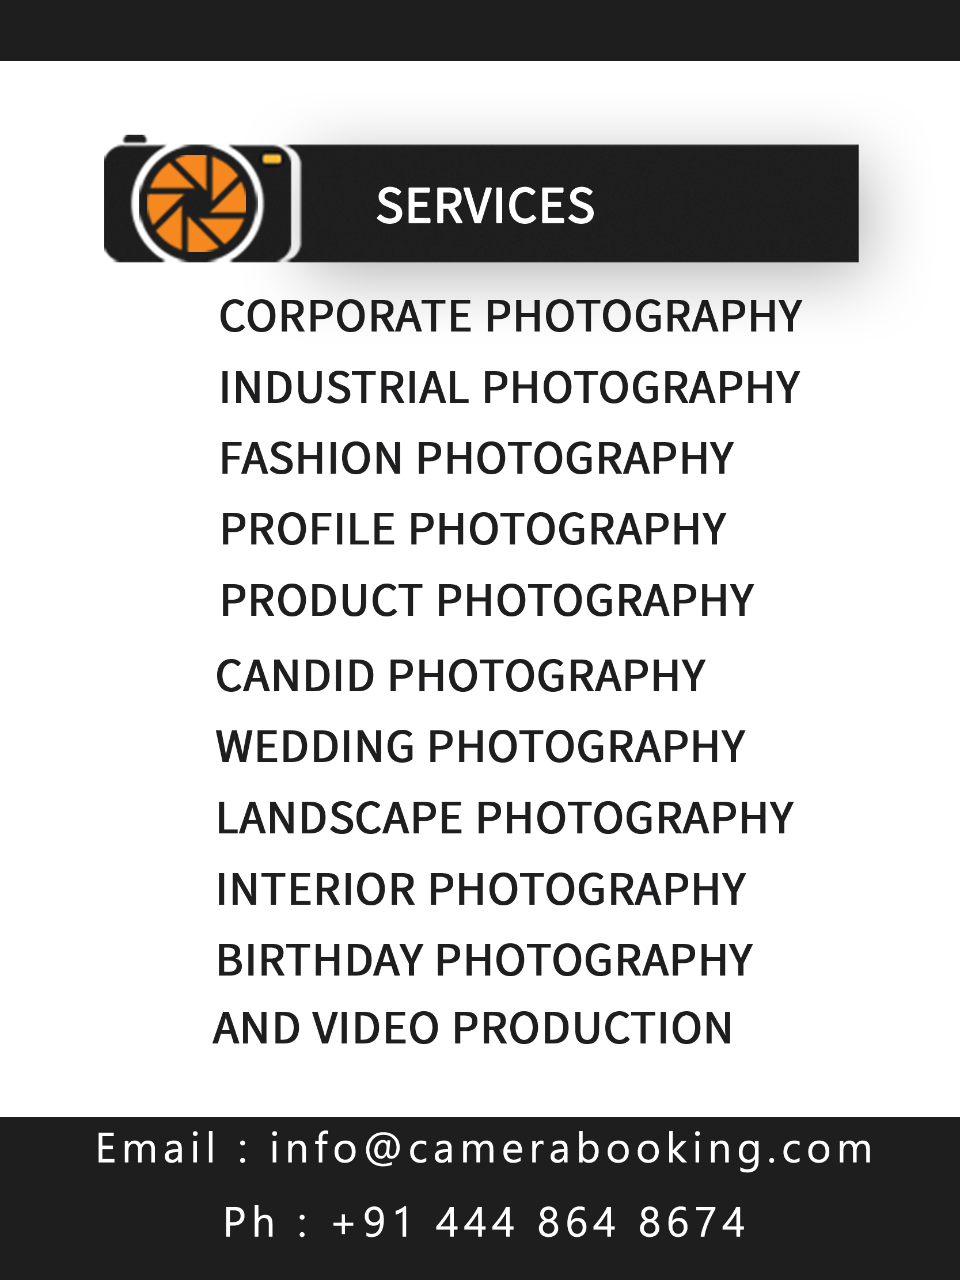 Camerabooking - demo - buzztm - We are provided best photography services for corporate, industrial, product, interior, fashion, wedding, birthday, events, portrait, family, outdoor, candid and video shooting.